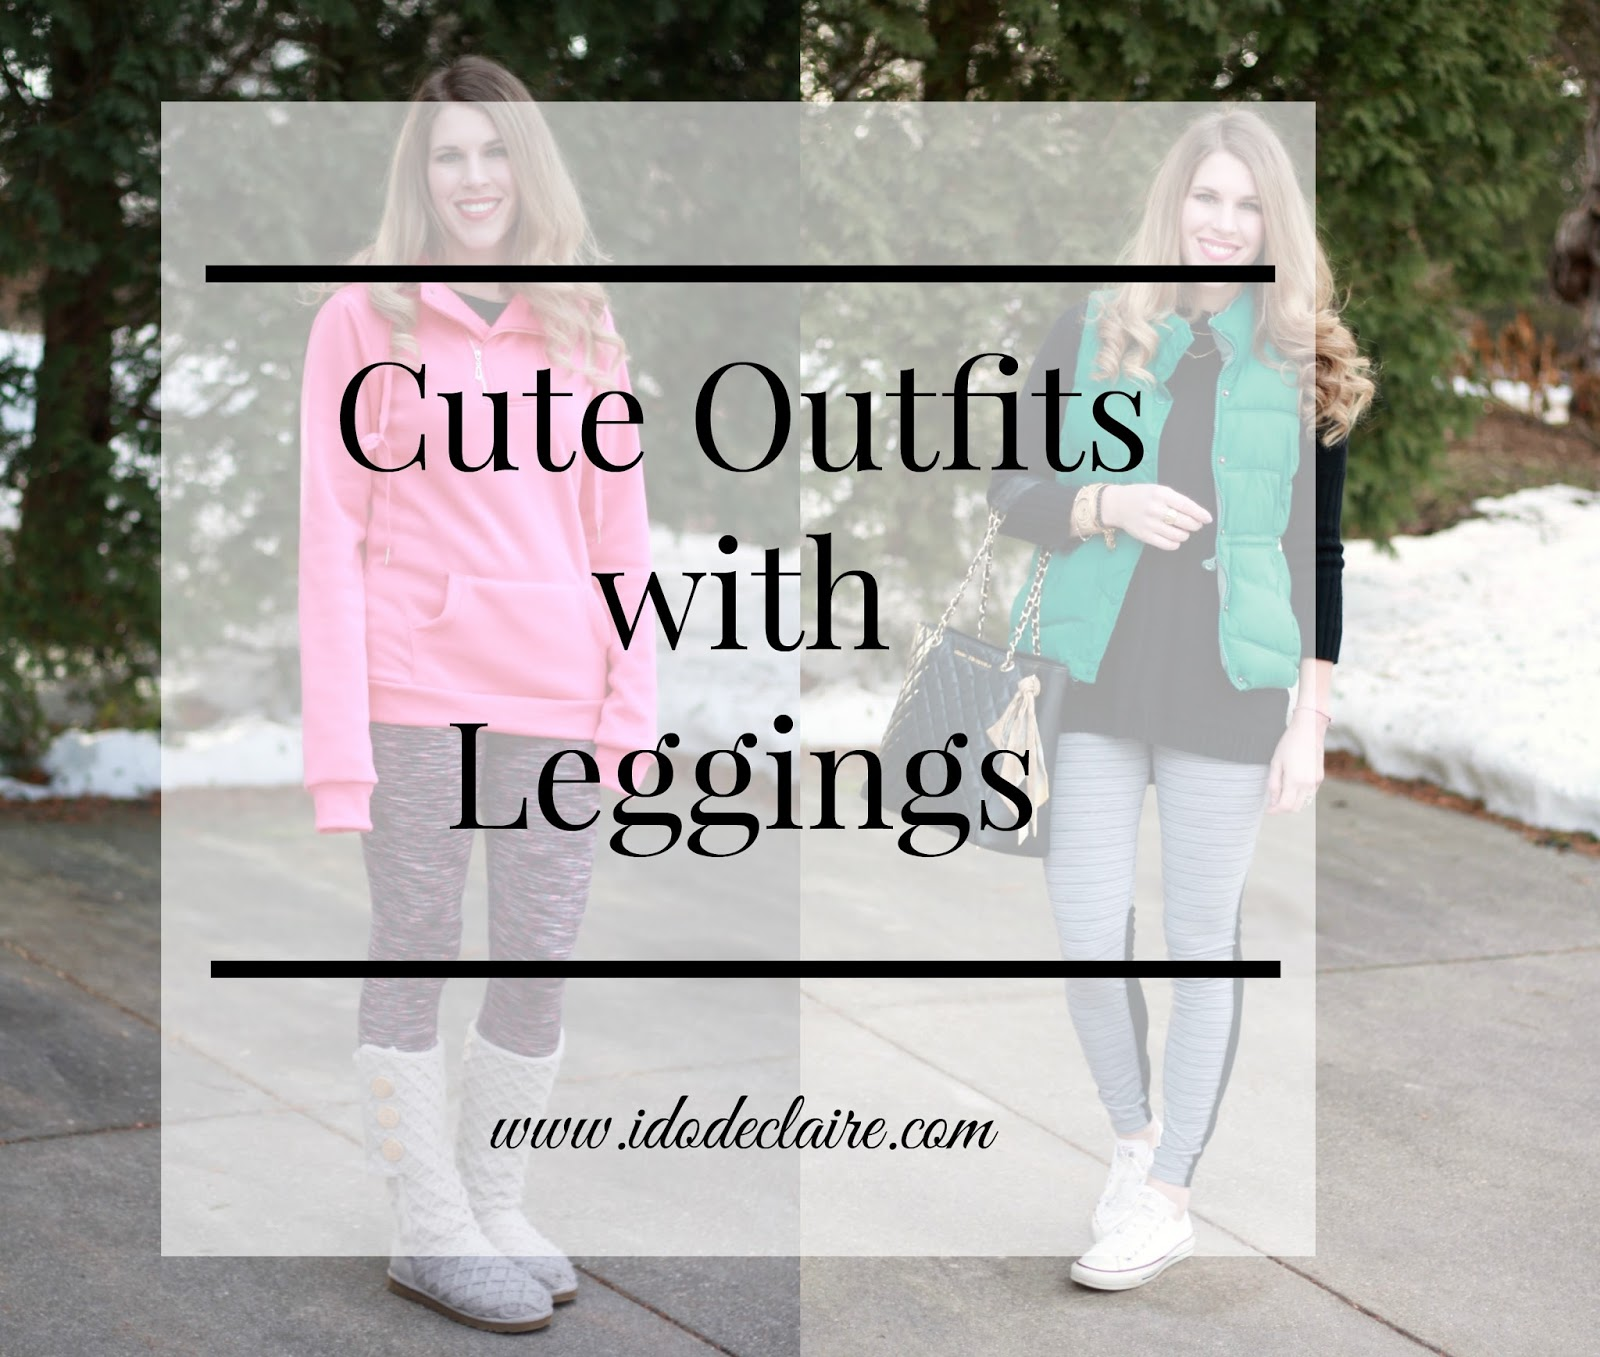 I do deClaire: Cute Outfits with Leggings